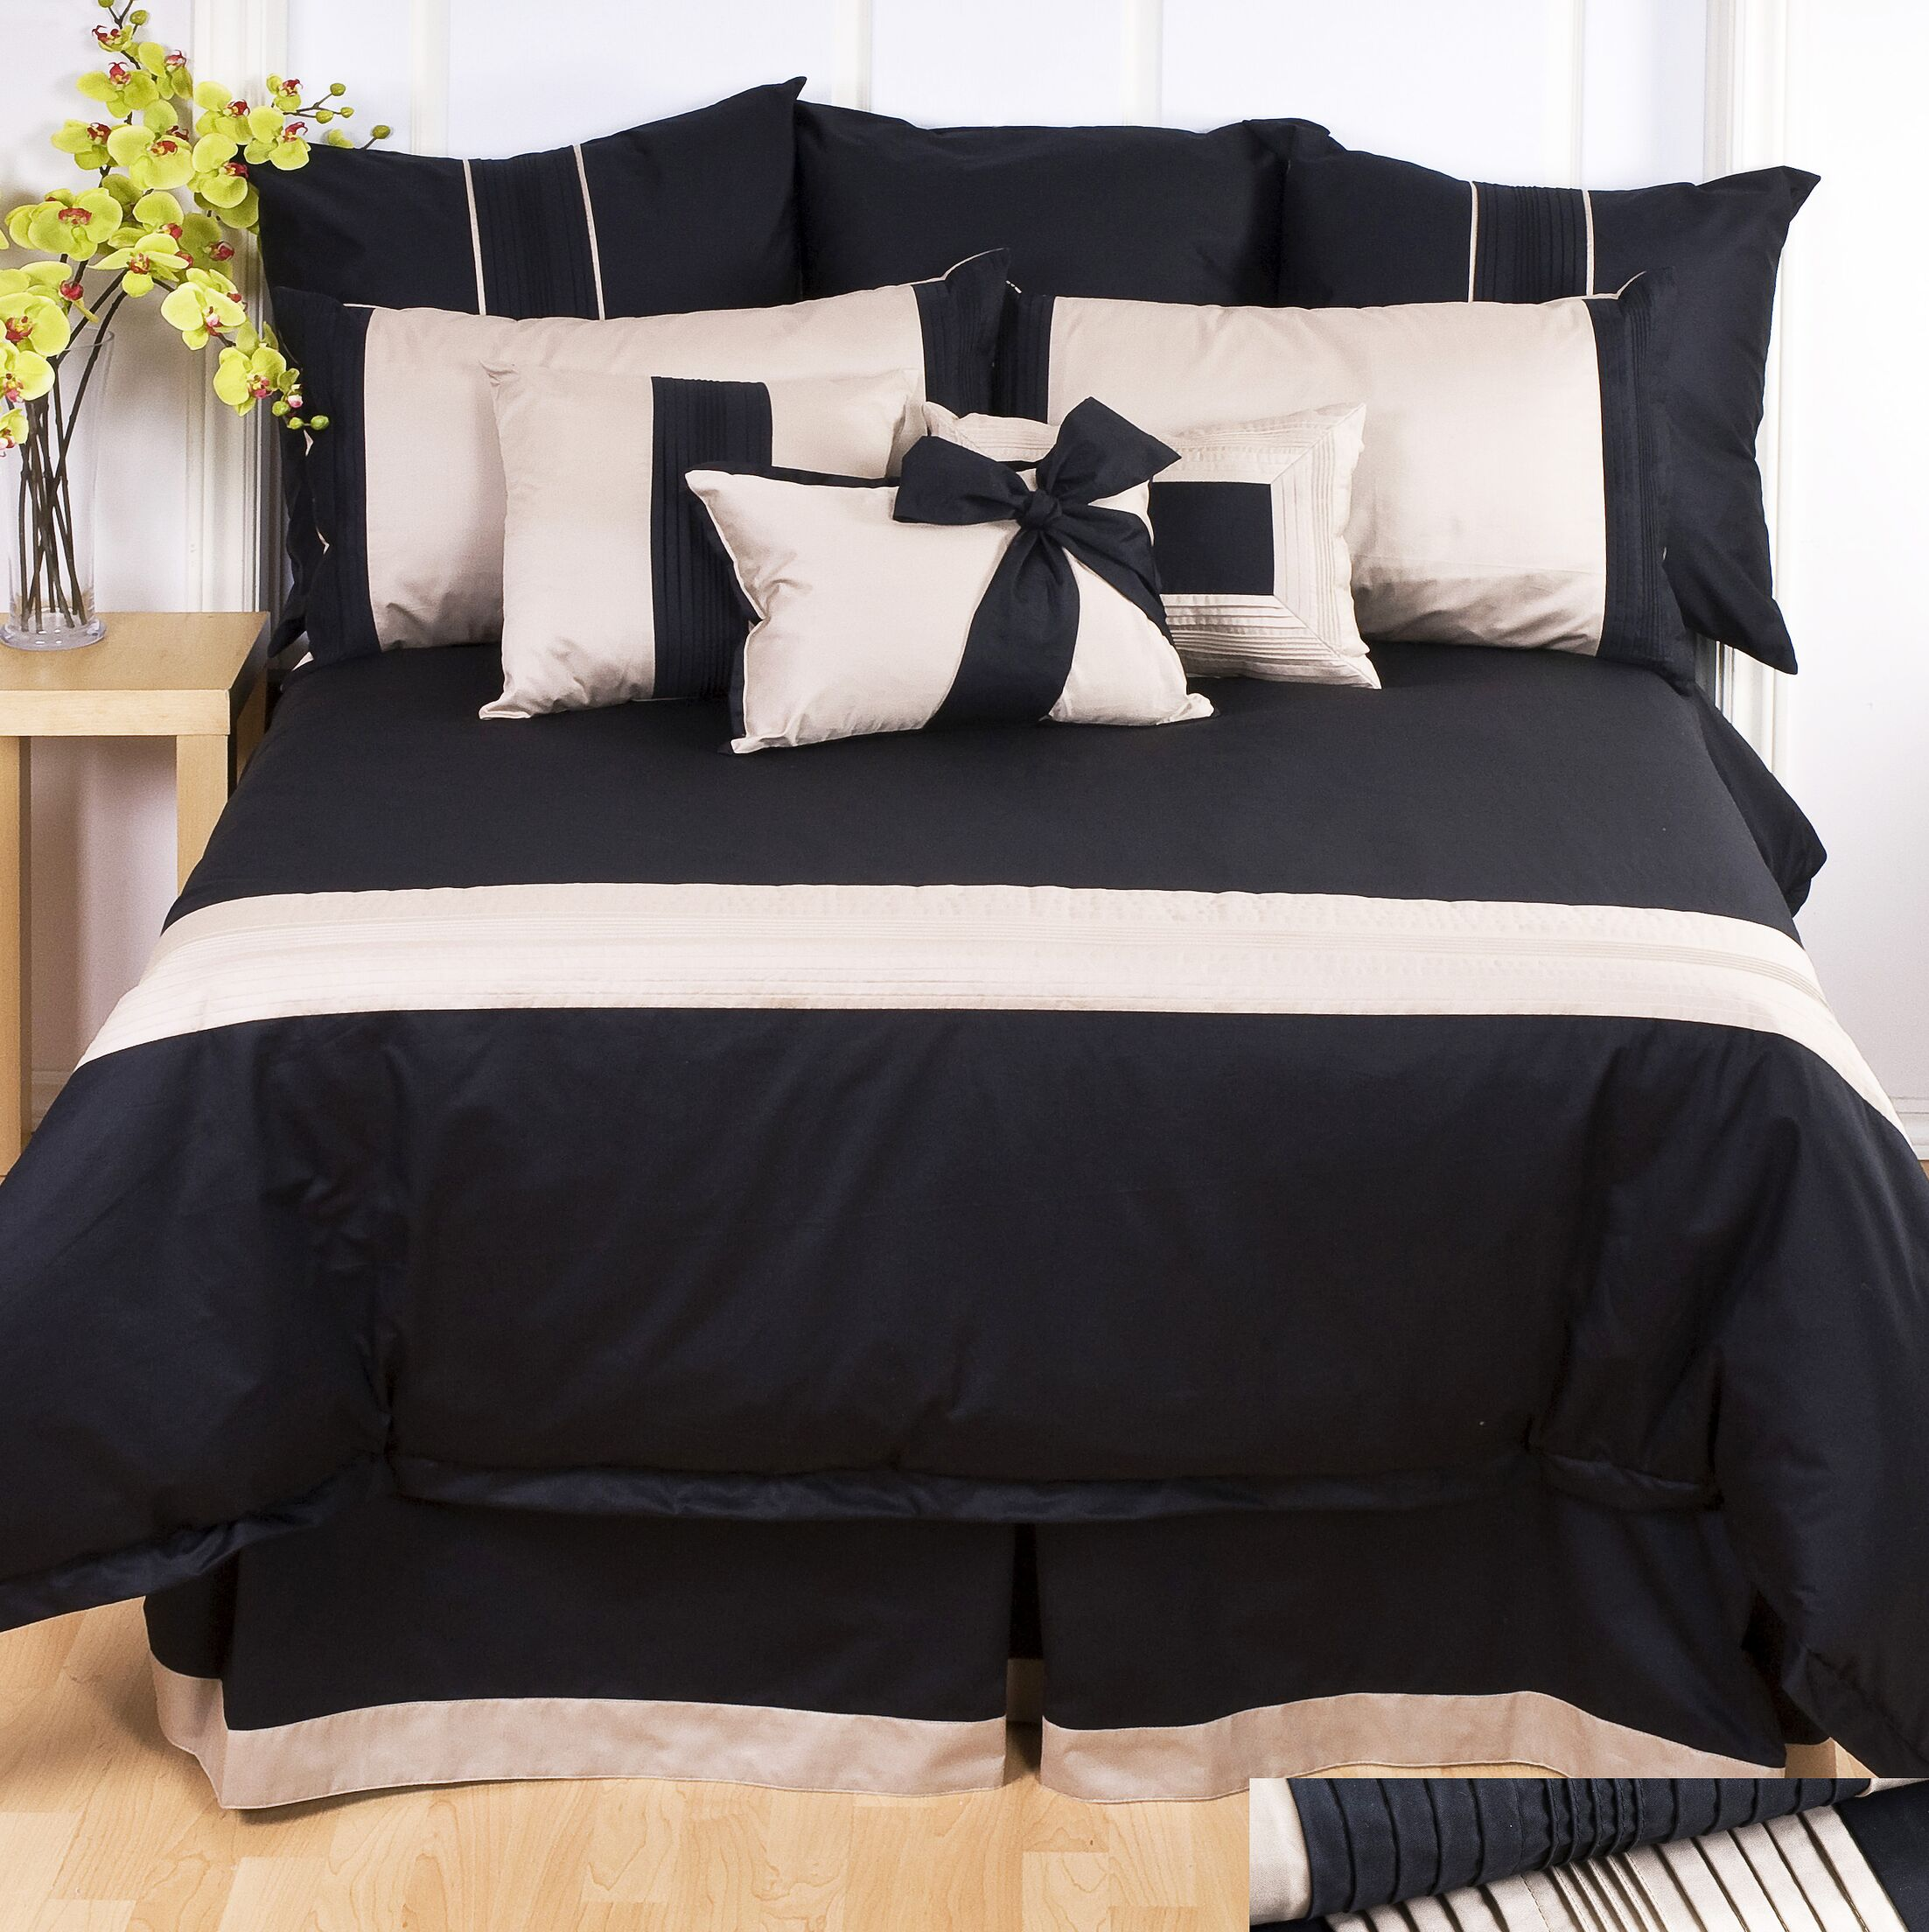 Tux Black Sheet Set Size: King, Color: Pewter with Black Band